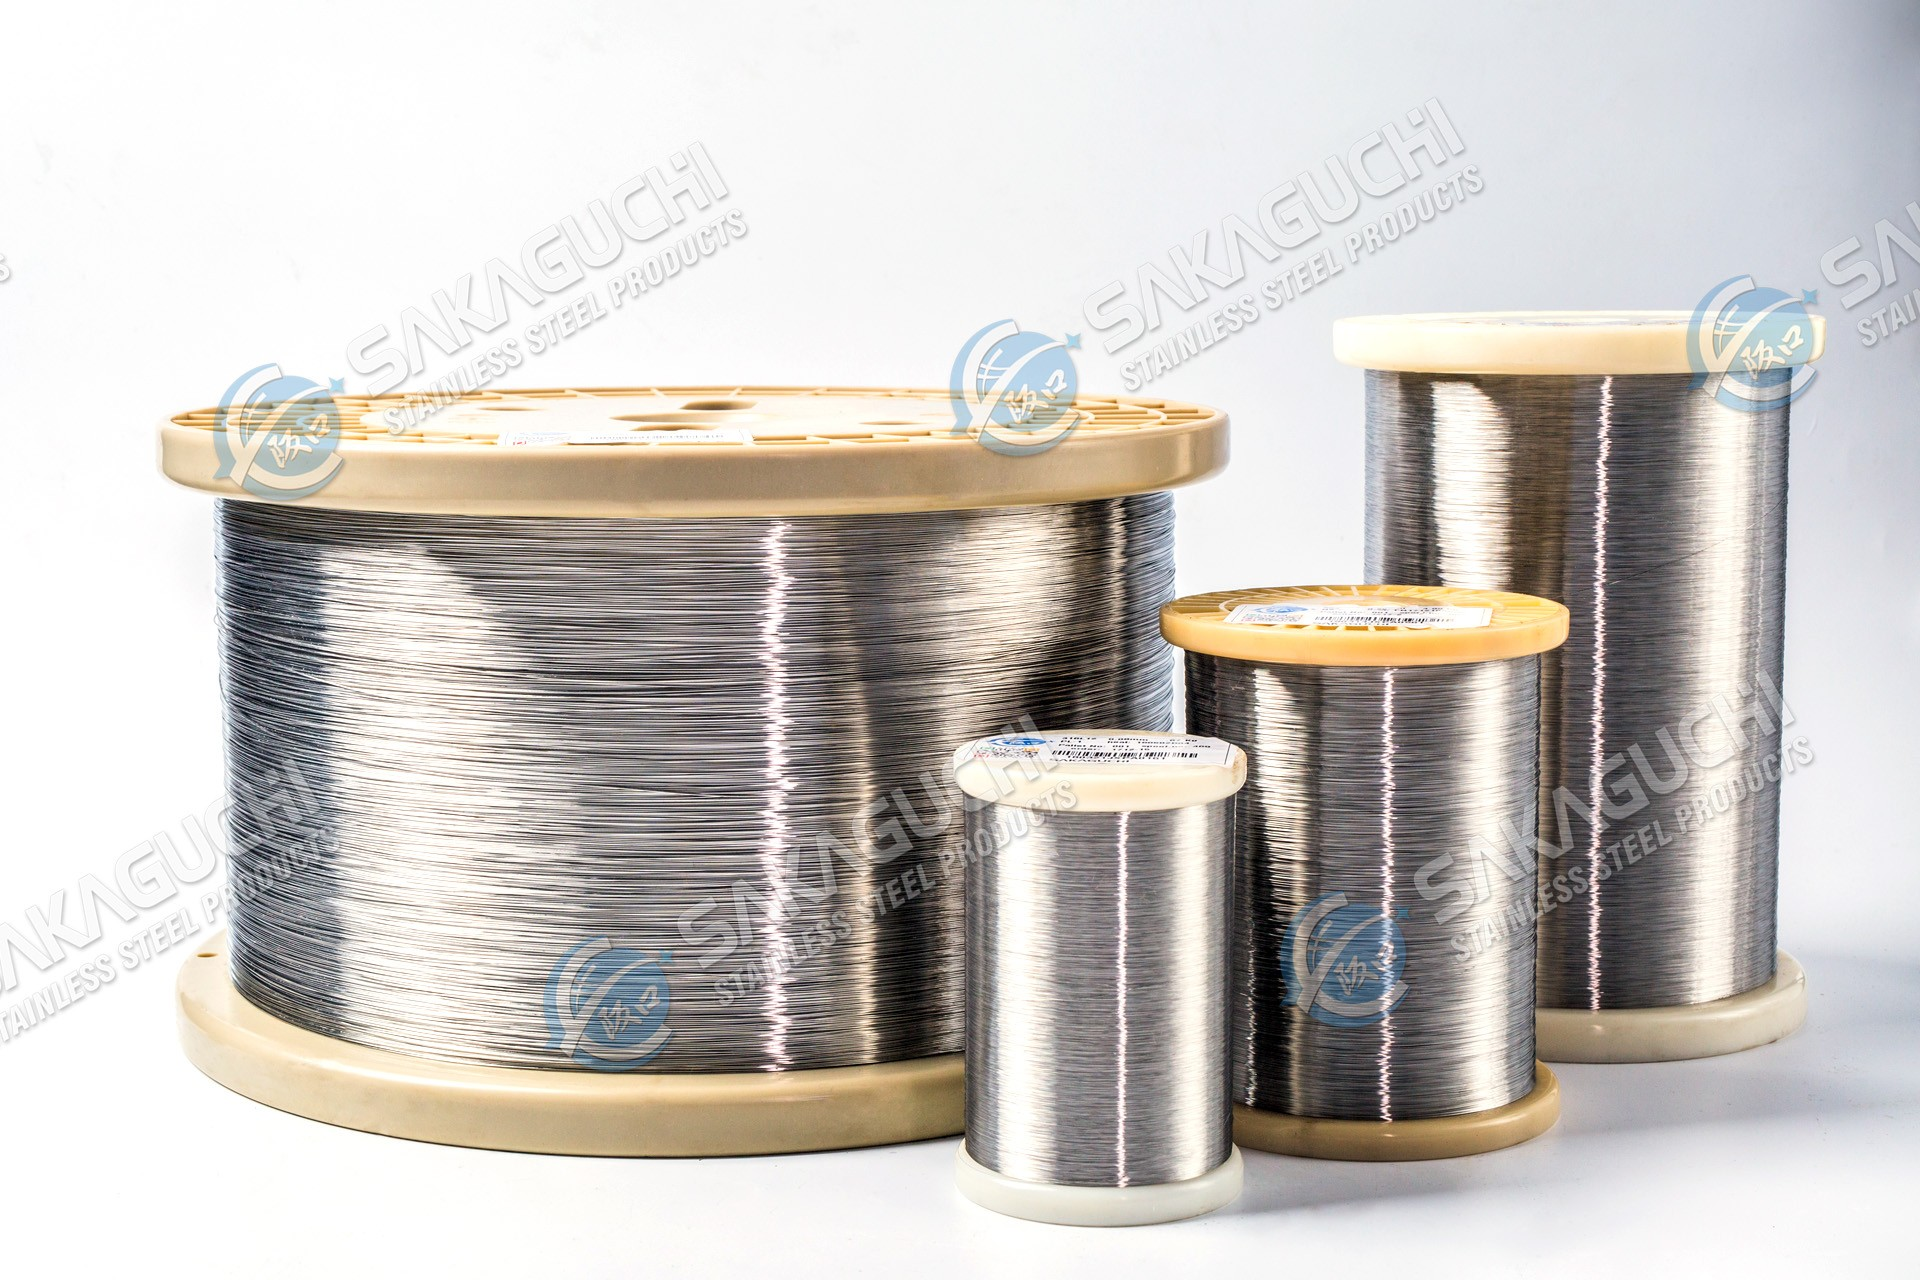 304L Stainless steel wire Manufacturers, 304L Stainless steel wire Factory, Supply 304L Stainless steel wire